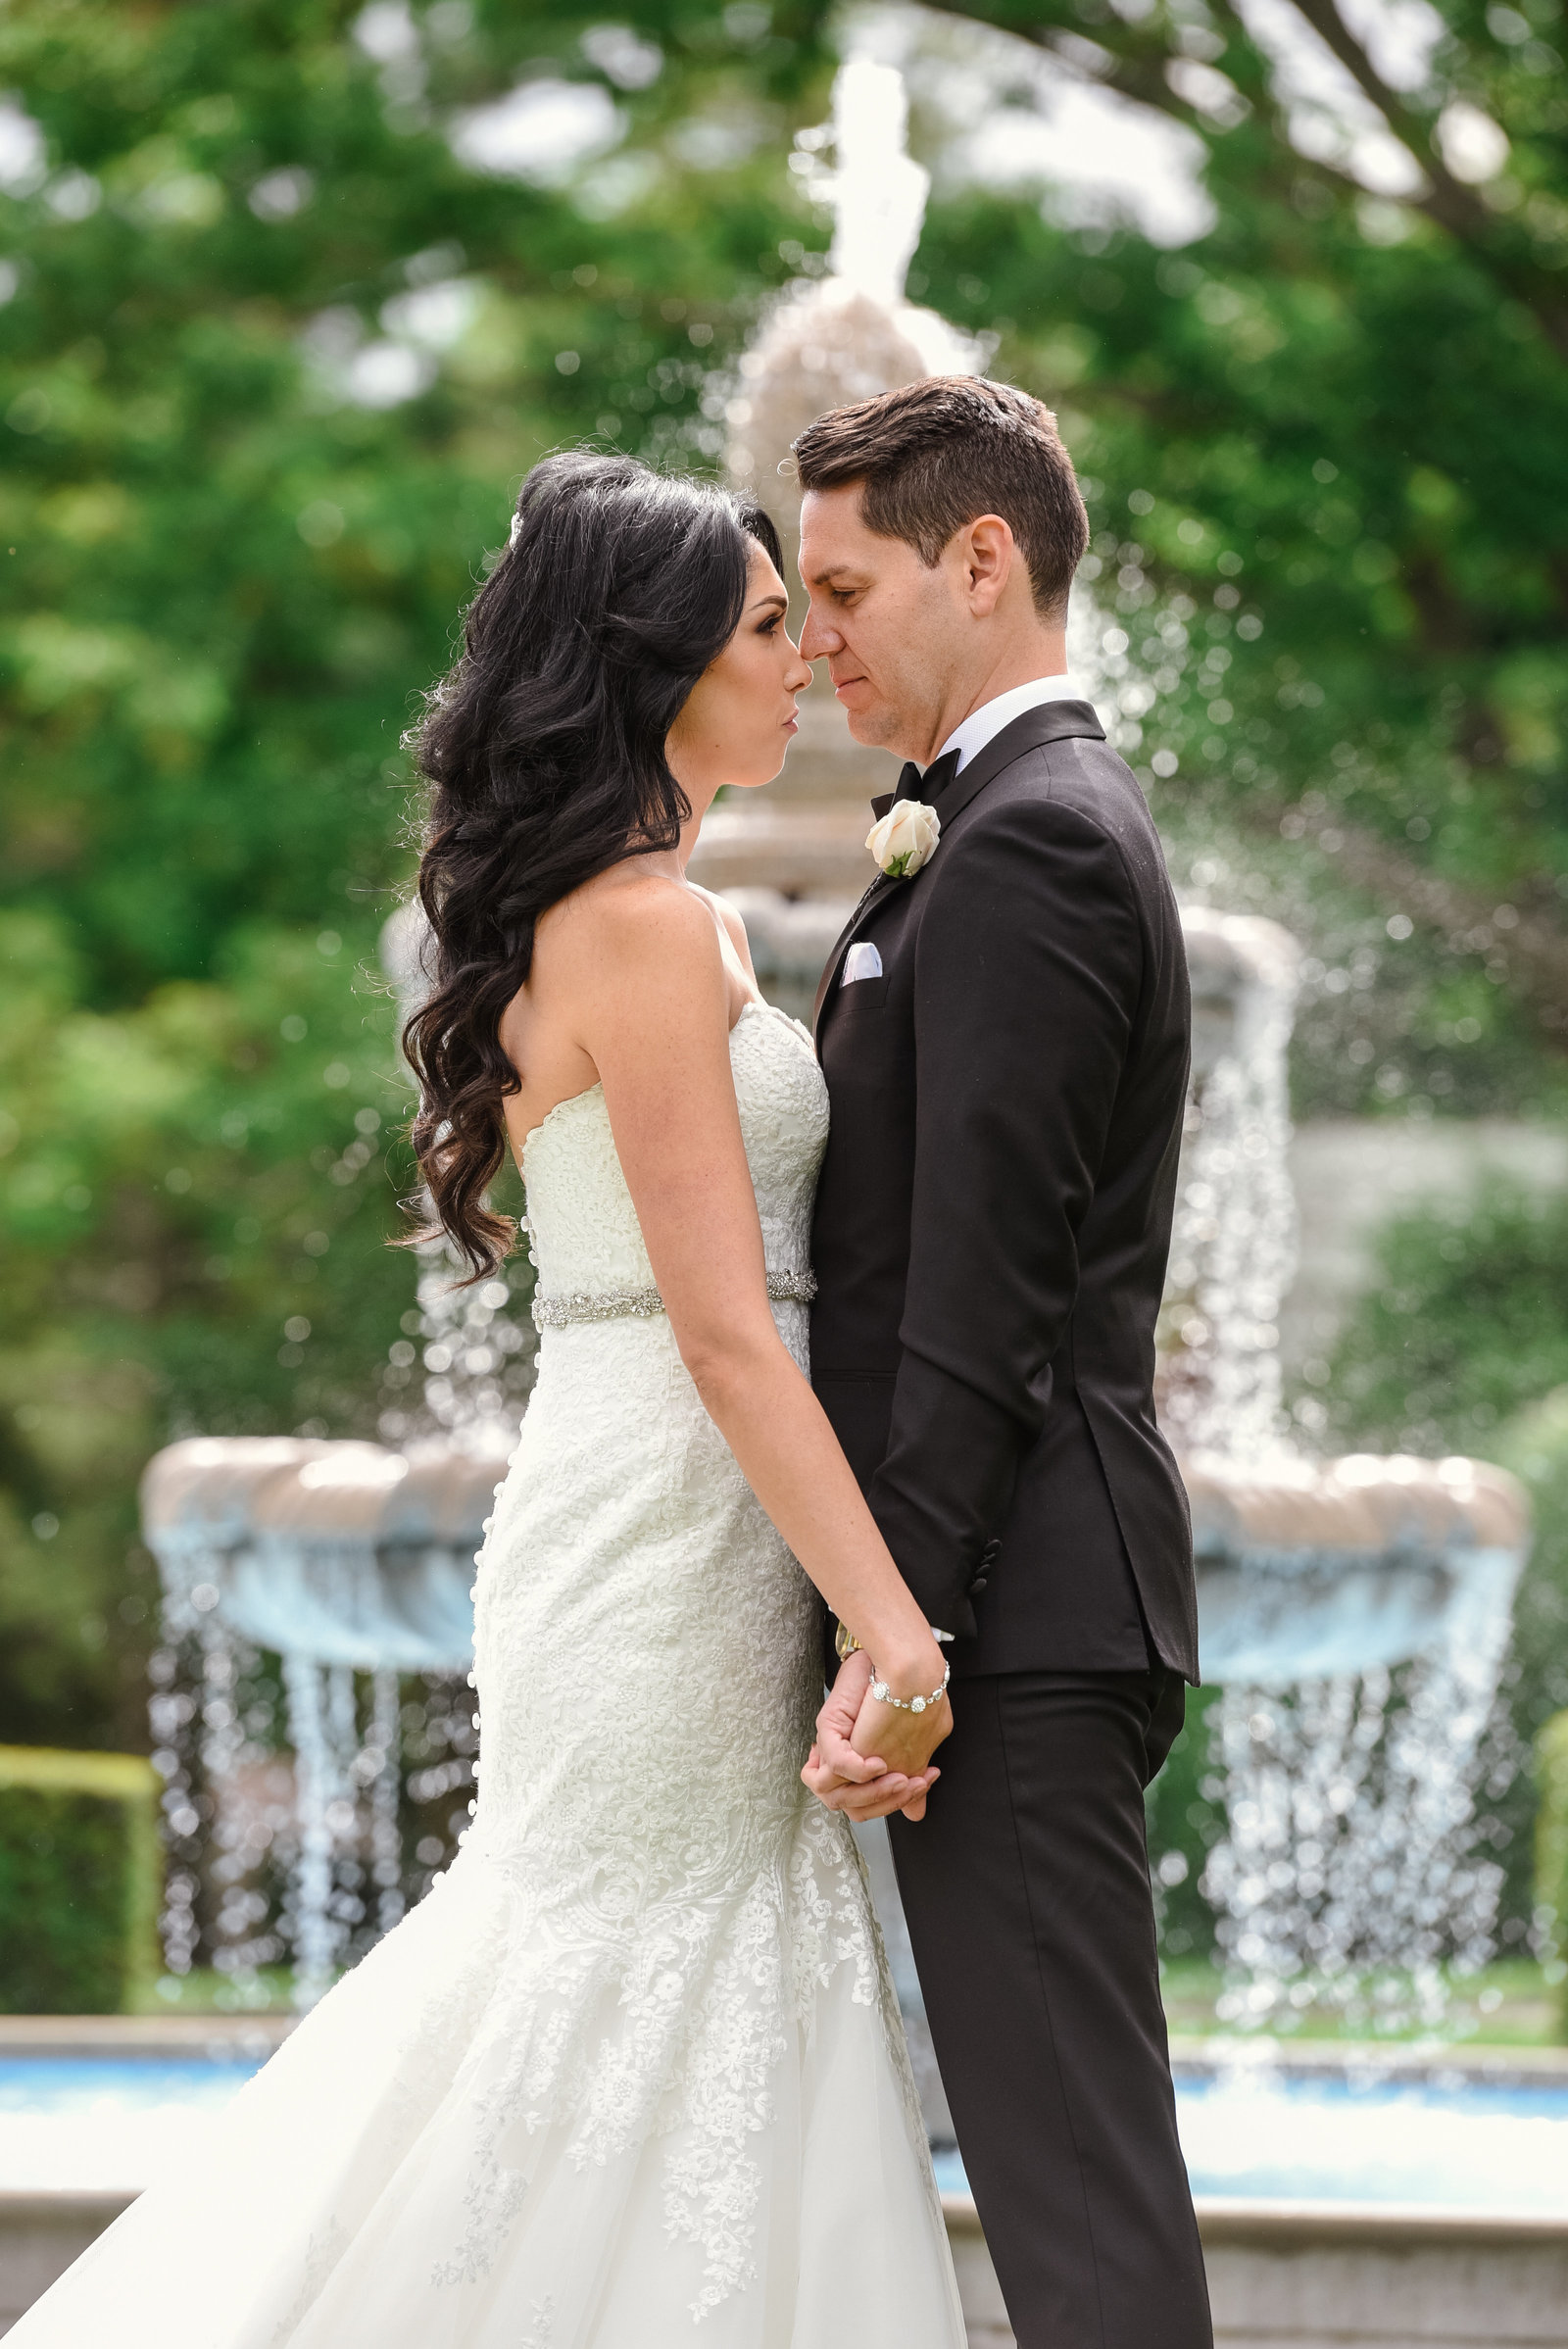 Bride and groom at the fountain of Glen Cove Mansion